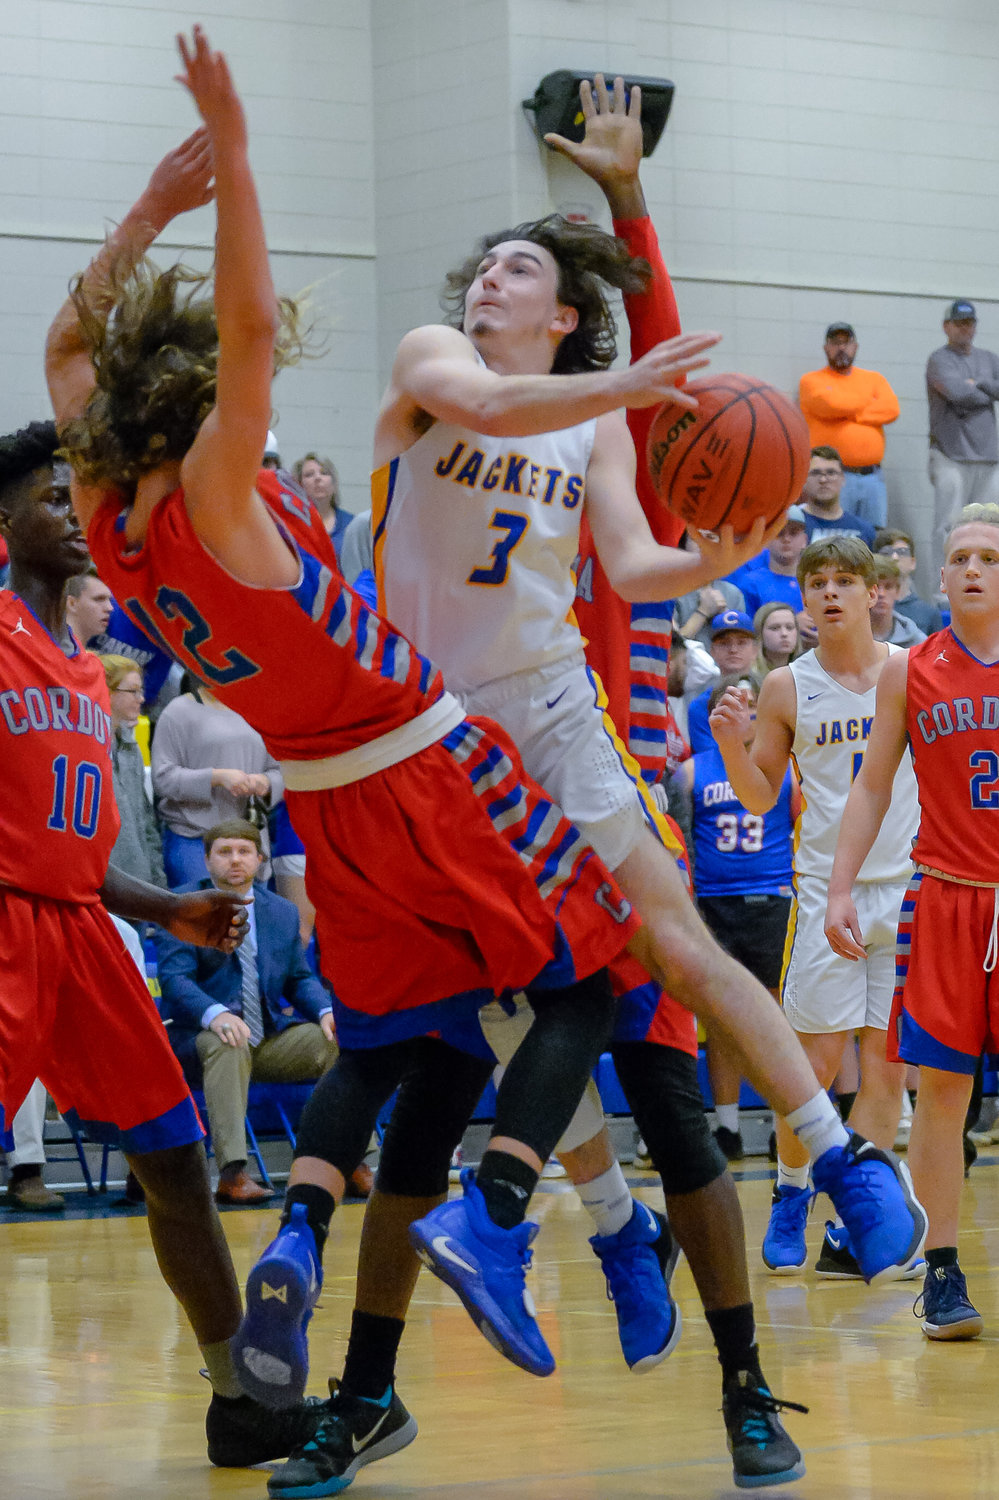 Curry's boys took down Cordova to earn a spot in Thursday's area tournament championship game against Halevyille.